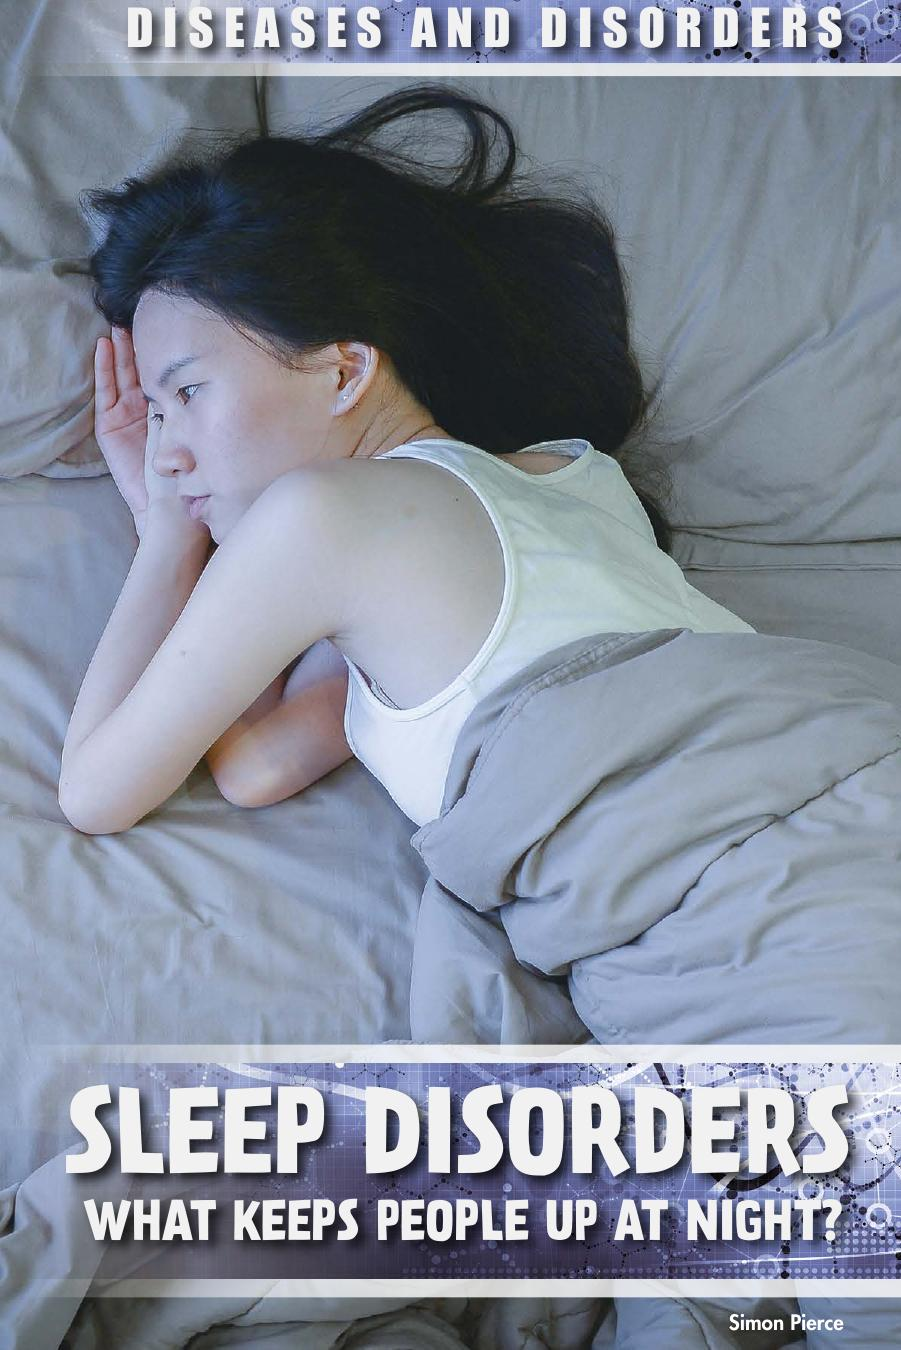 Sleep Disorders: What Keeps People Up at Night? (Diseases and Disorders)